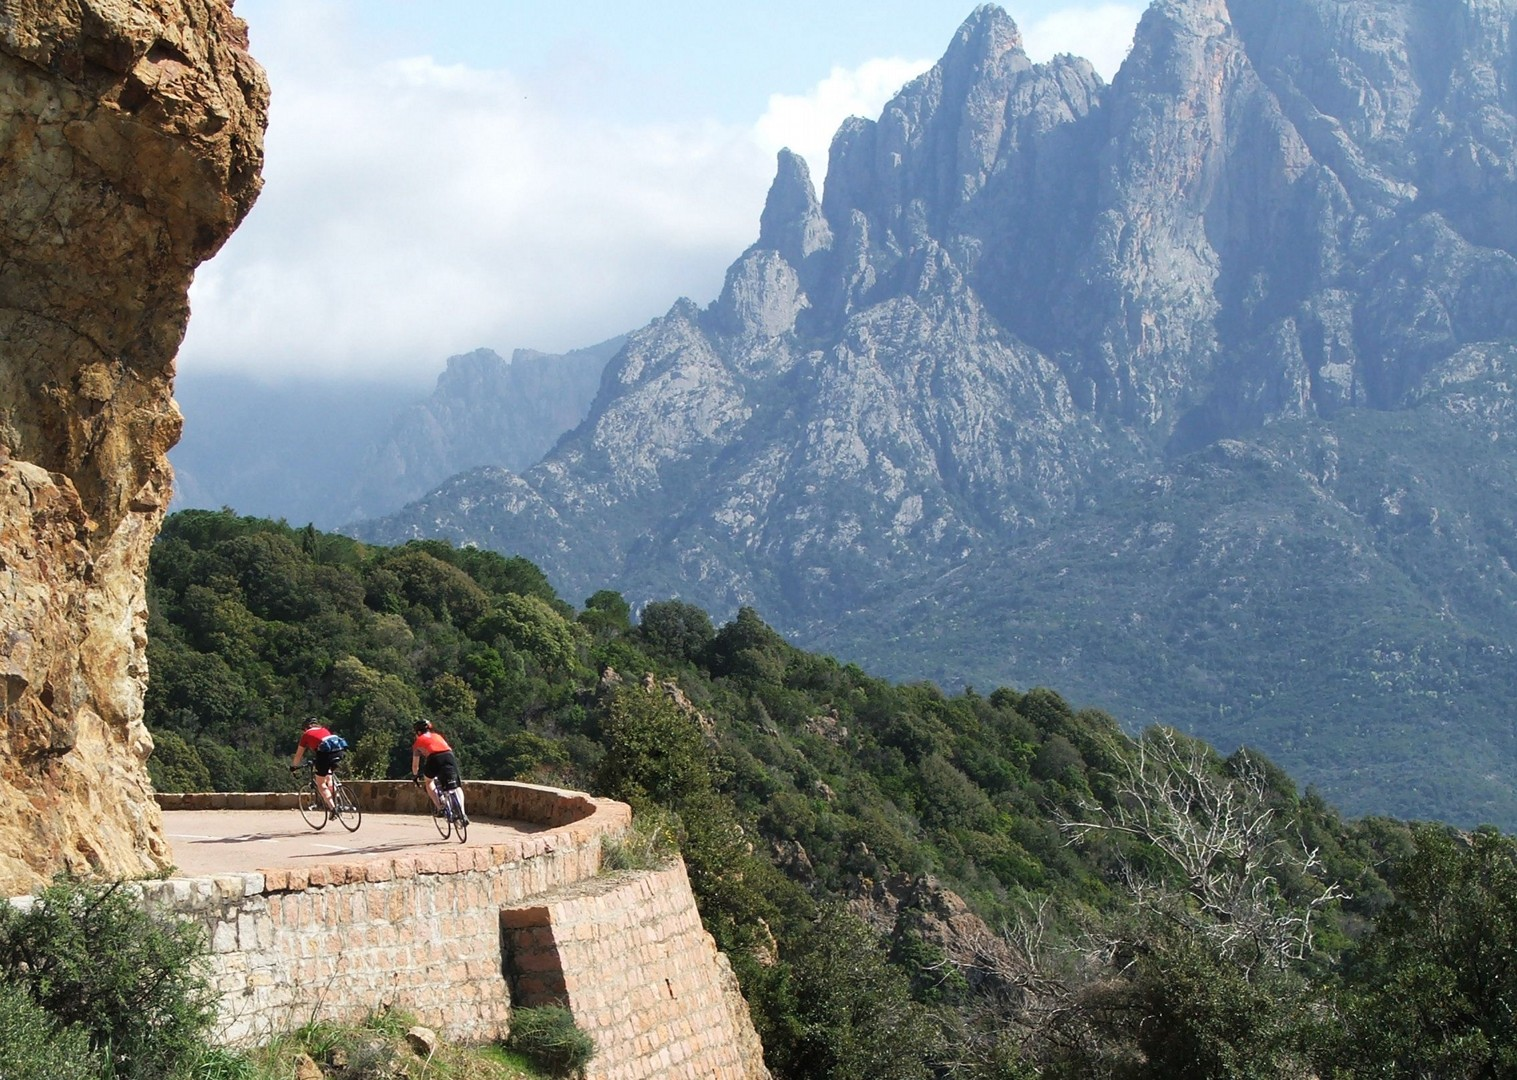 mediterranean-cycling-corsica-guided-road-cycling-holiday-the-beautiful-isle.jpg - France - Corsica - The Beautiful Isle - Guided Road Cycling Holiday - Road Cycling